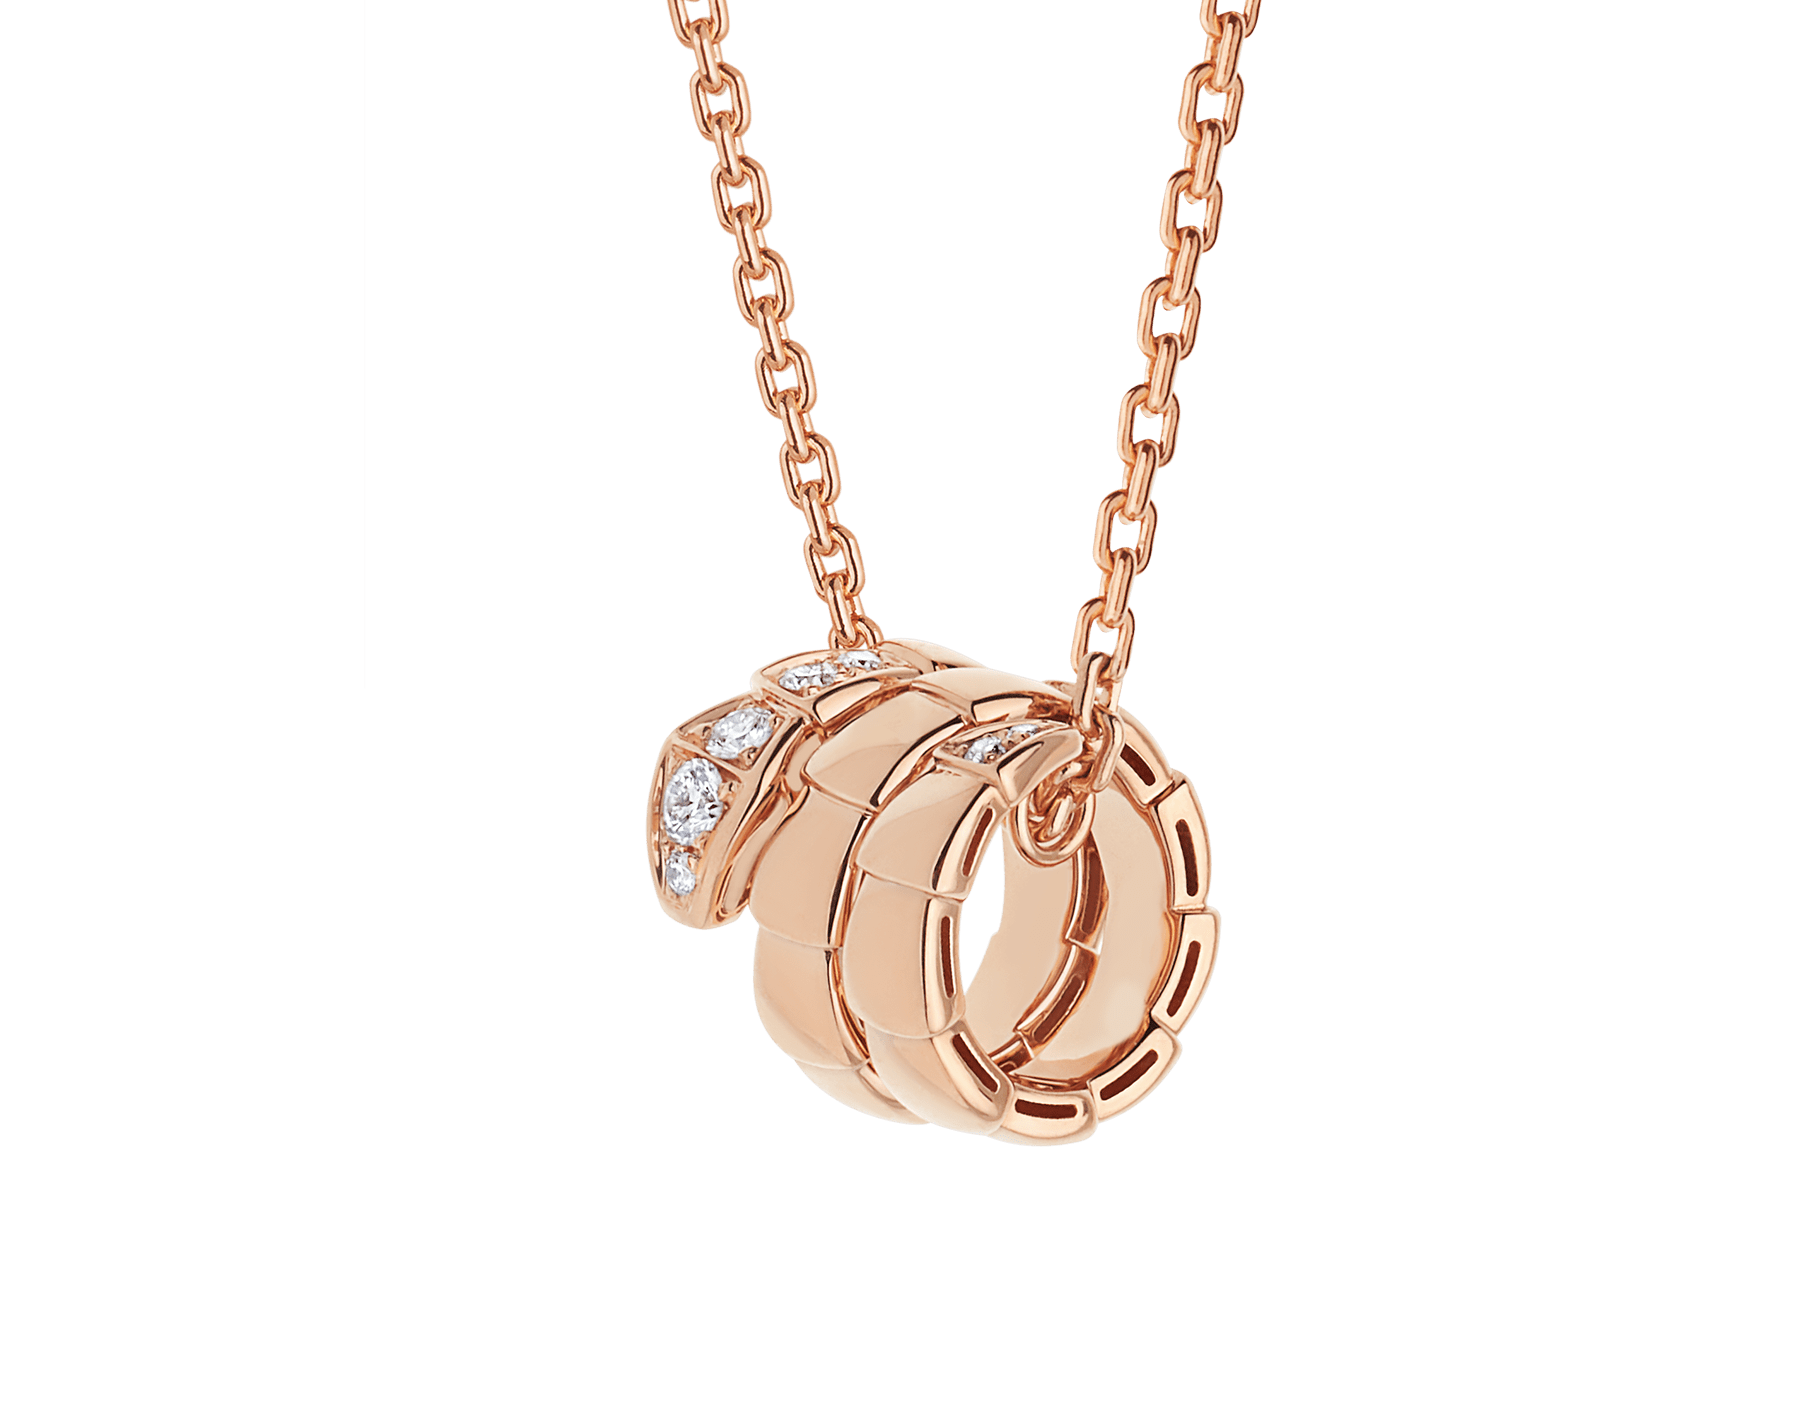 Serpenti Viper pendant necklace in 18 kt rose gold set with demi-pavé diamonds 357794 image 1